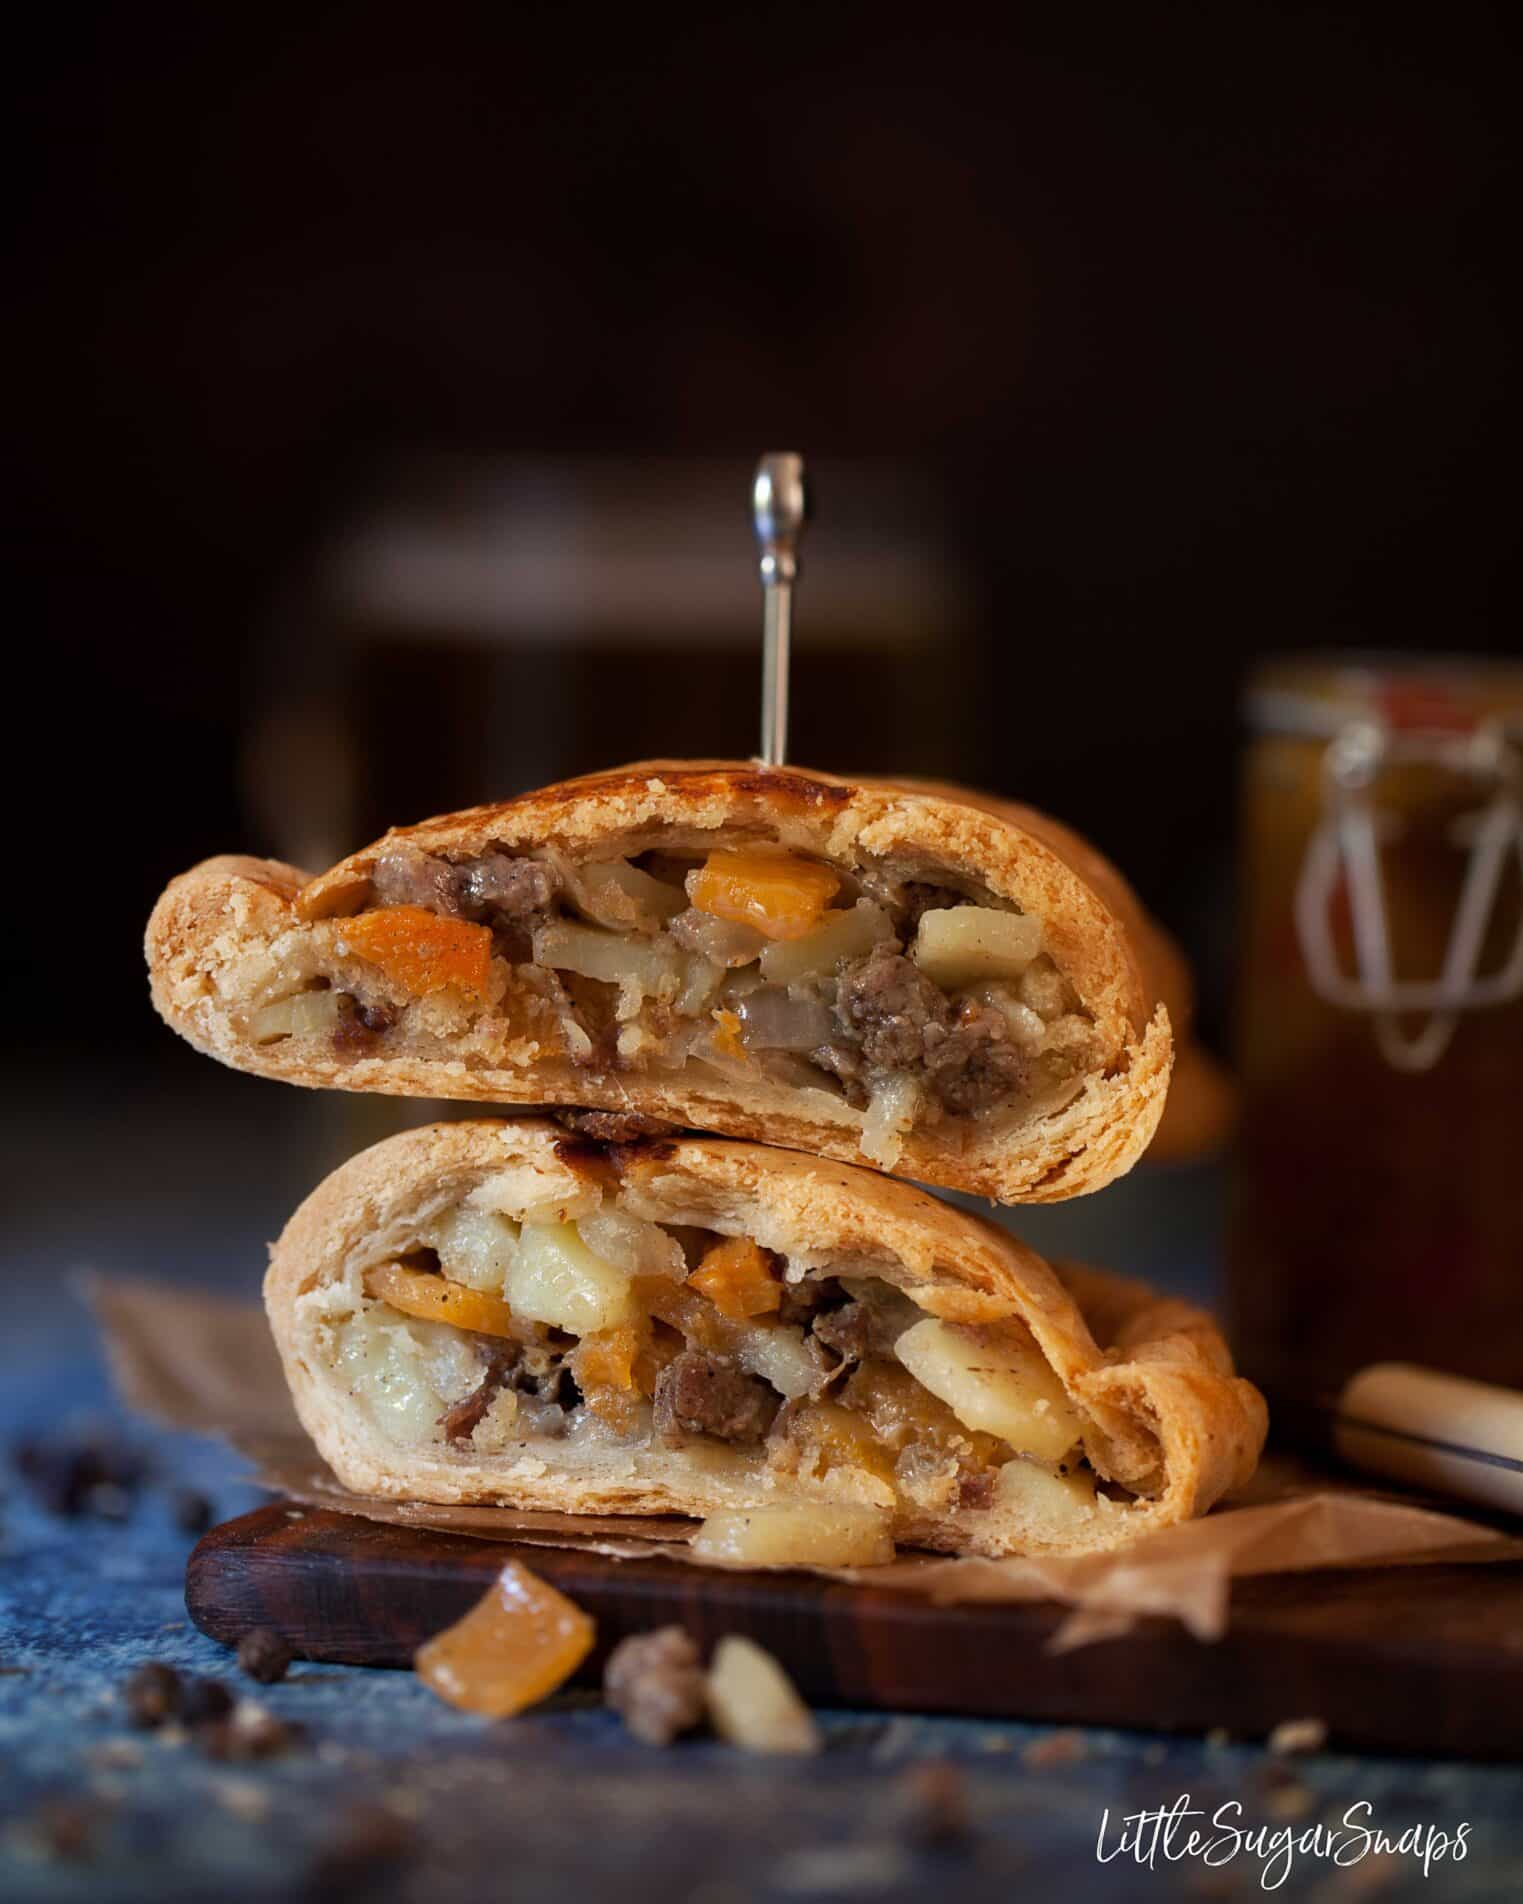 Traditional Cornish pasty cut in half and stacked on top of each other.